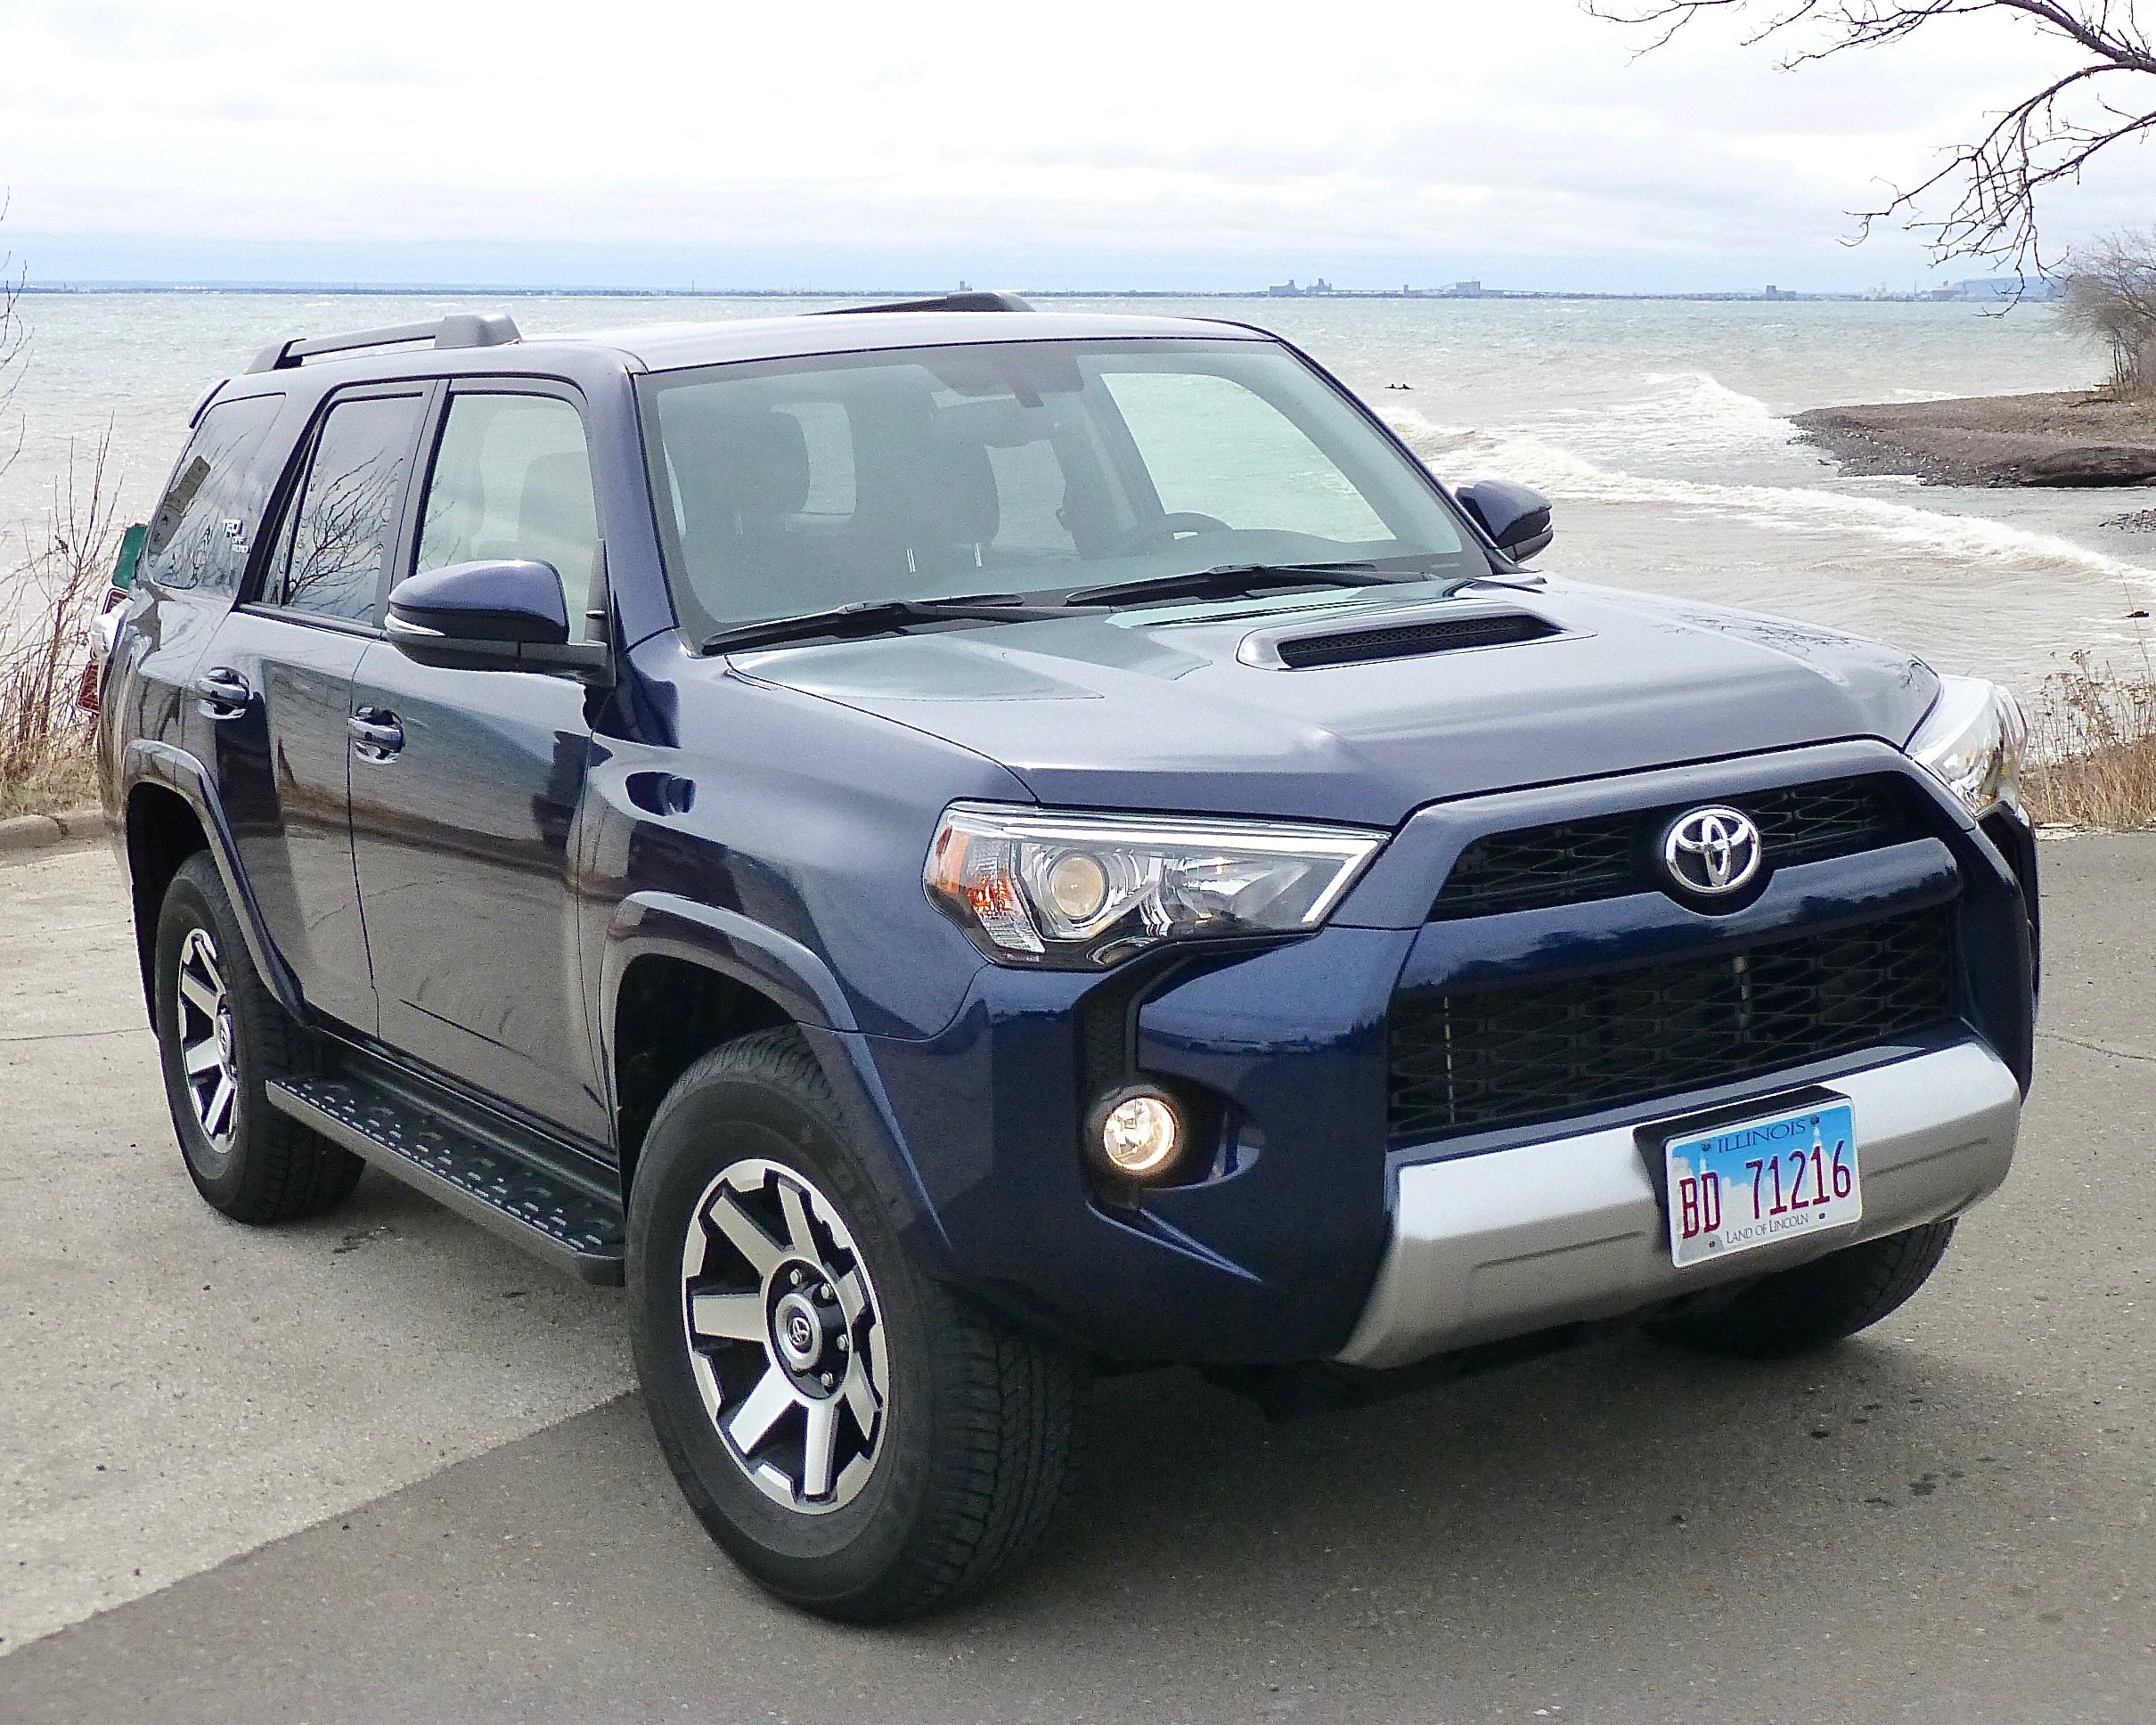 Stylishly rugged, the 2019 Toyota 4Runner offers no surprises.